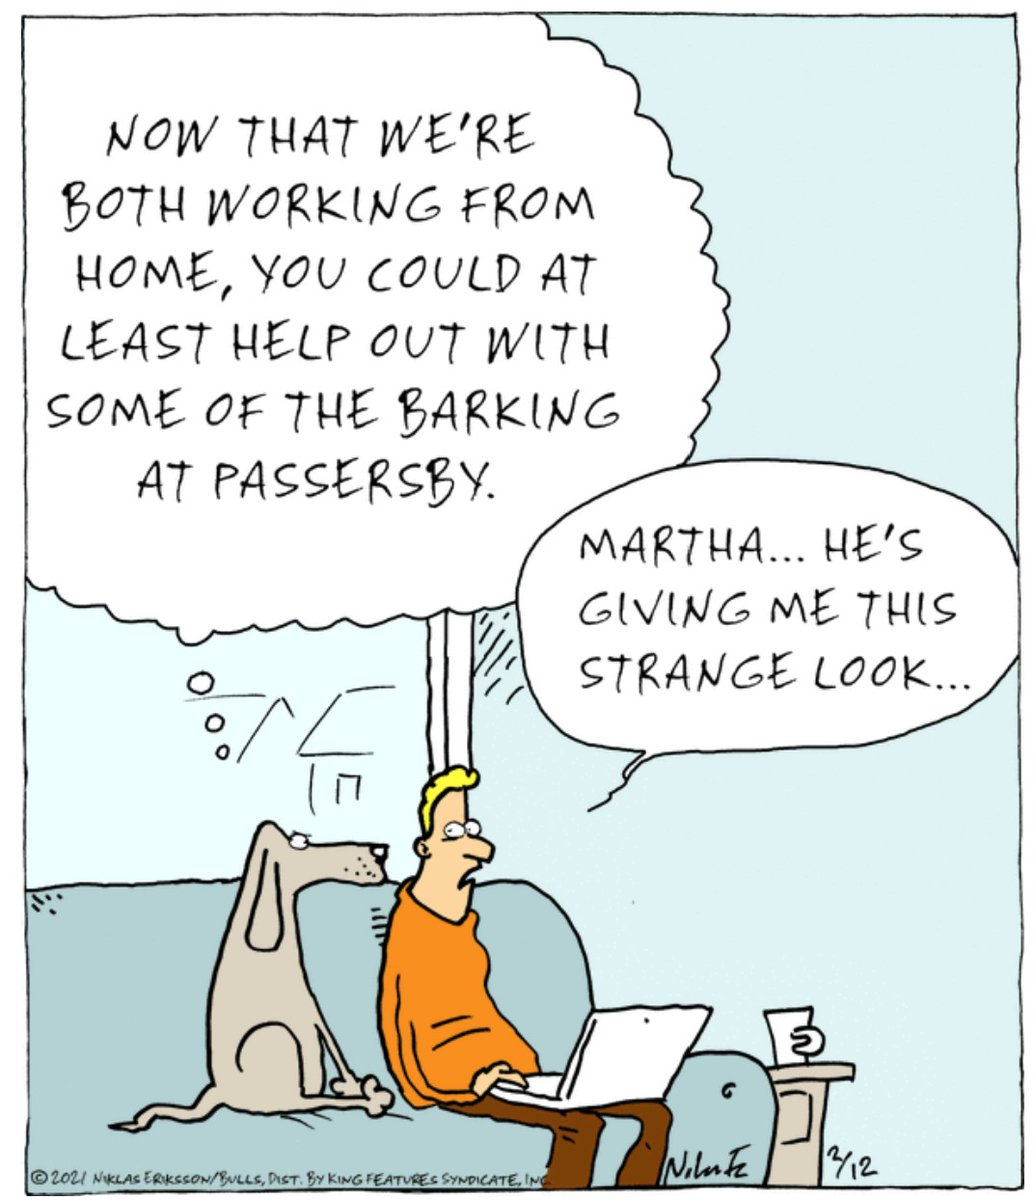 . #Dog Wants Help from his #WorkingFromHome Human  #lol #comedy #jokes #humor #hilarious #laughter #funny #fun #smile #laughing #lmao #haha #dogs #doggy #dogsoftwitter #mydog #dogslife #doglover #puppy #dogsarelove #lovemydog #dogslife #dogsarefamily #pets #animallovers #animals